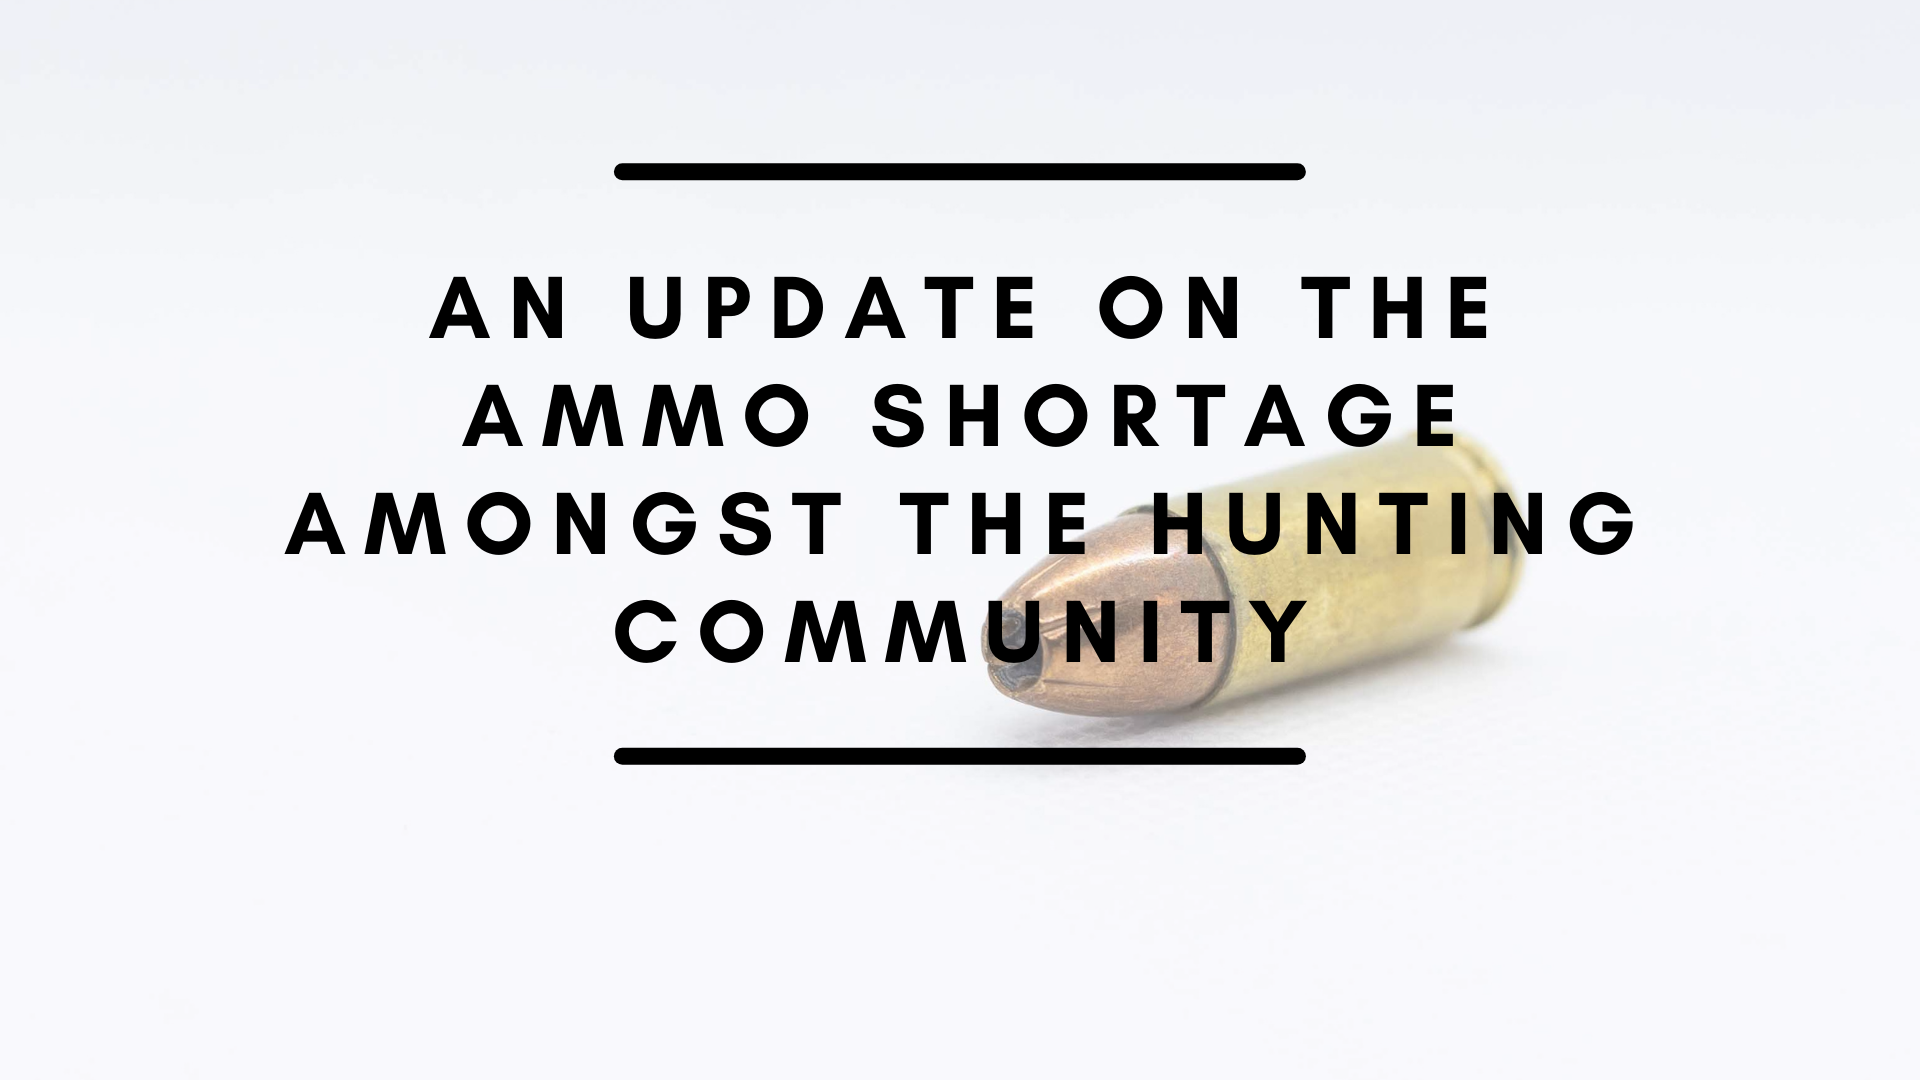 AN UPDATE ON THE AMMO SHORTAGE AMONGST THE HUNTING COMMUNITY